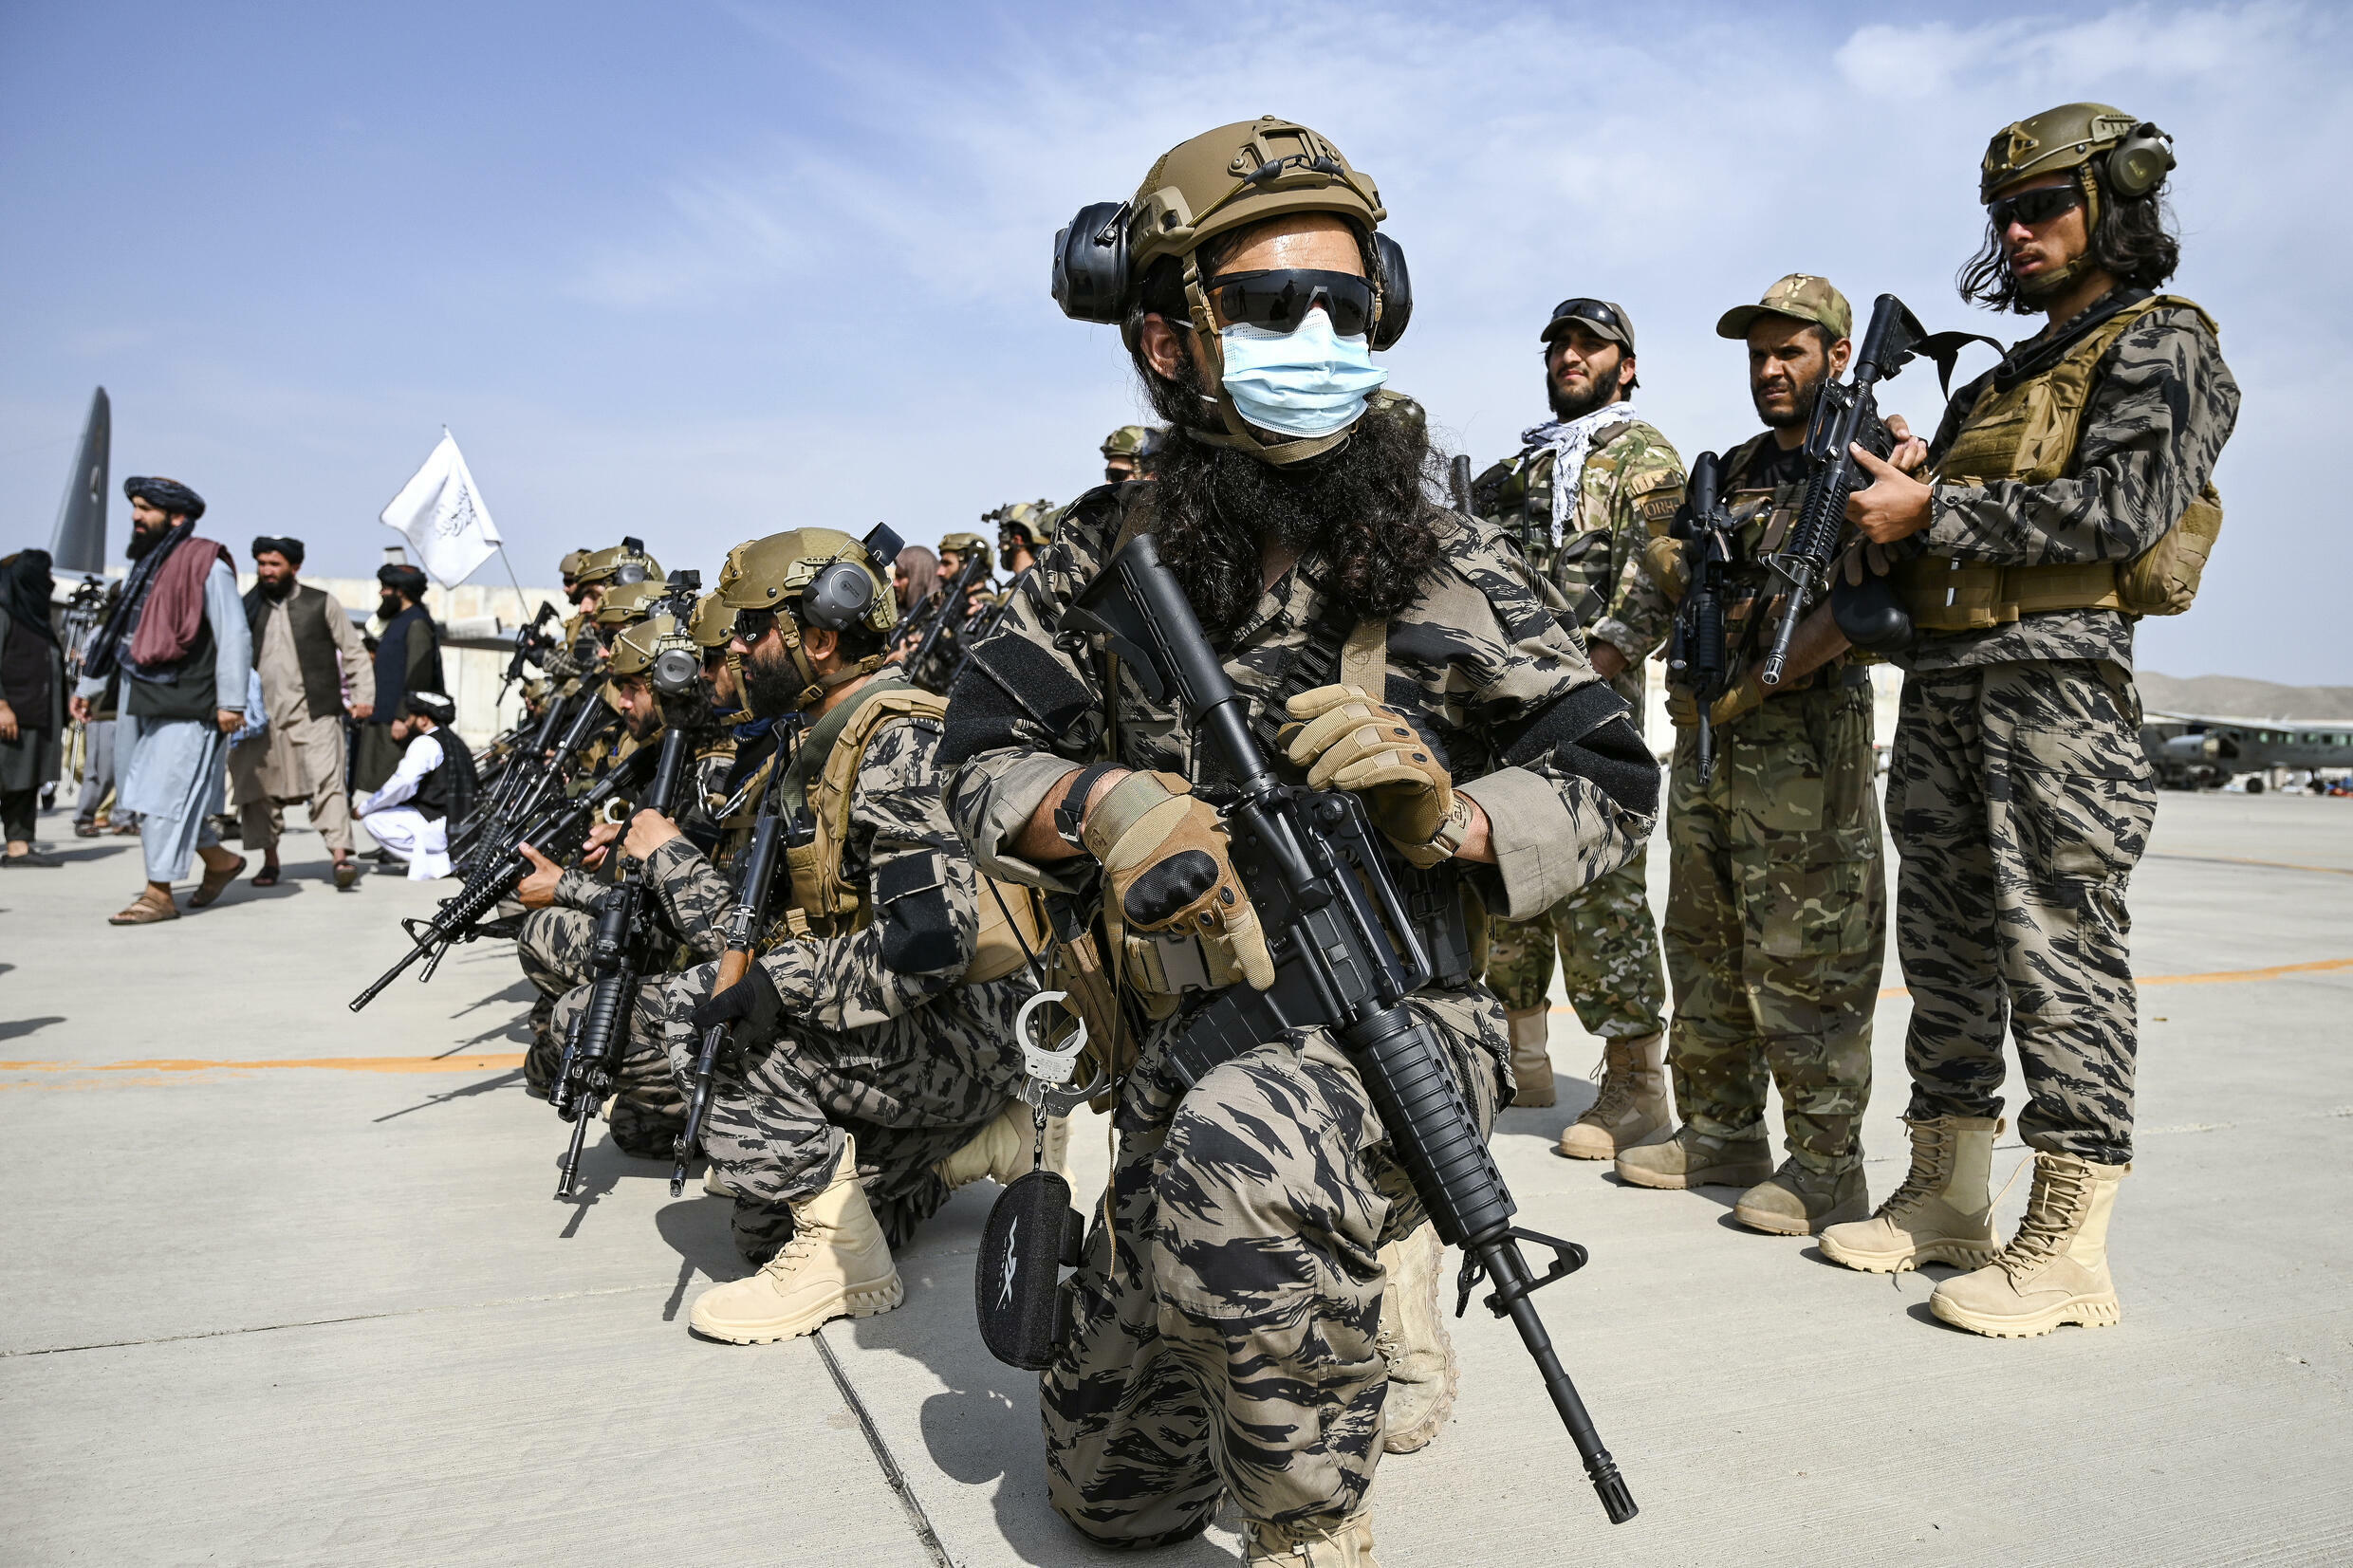 Members of the Taliban Badri 313 military unit take up positions at the airport in the Afghan capital Kabul after the US pulled its last troops out of the country